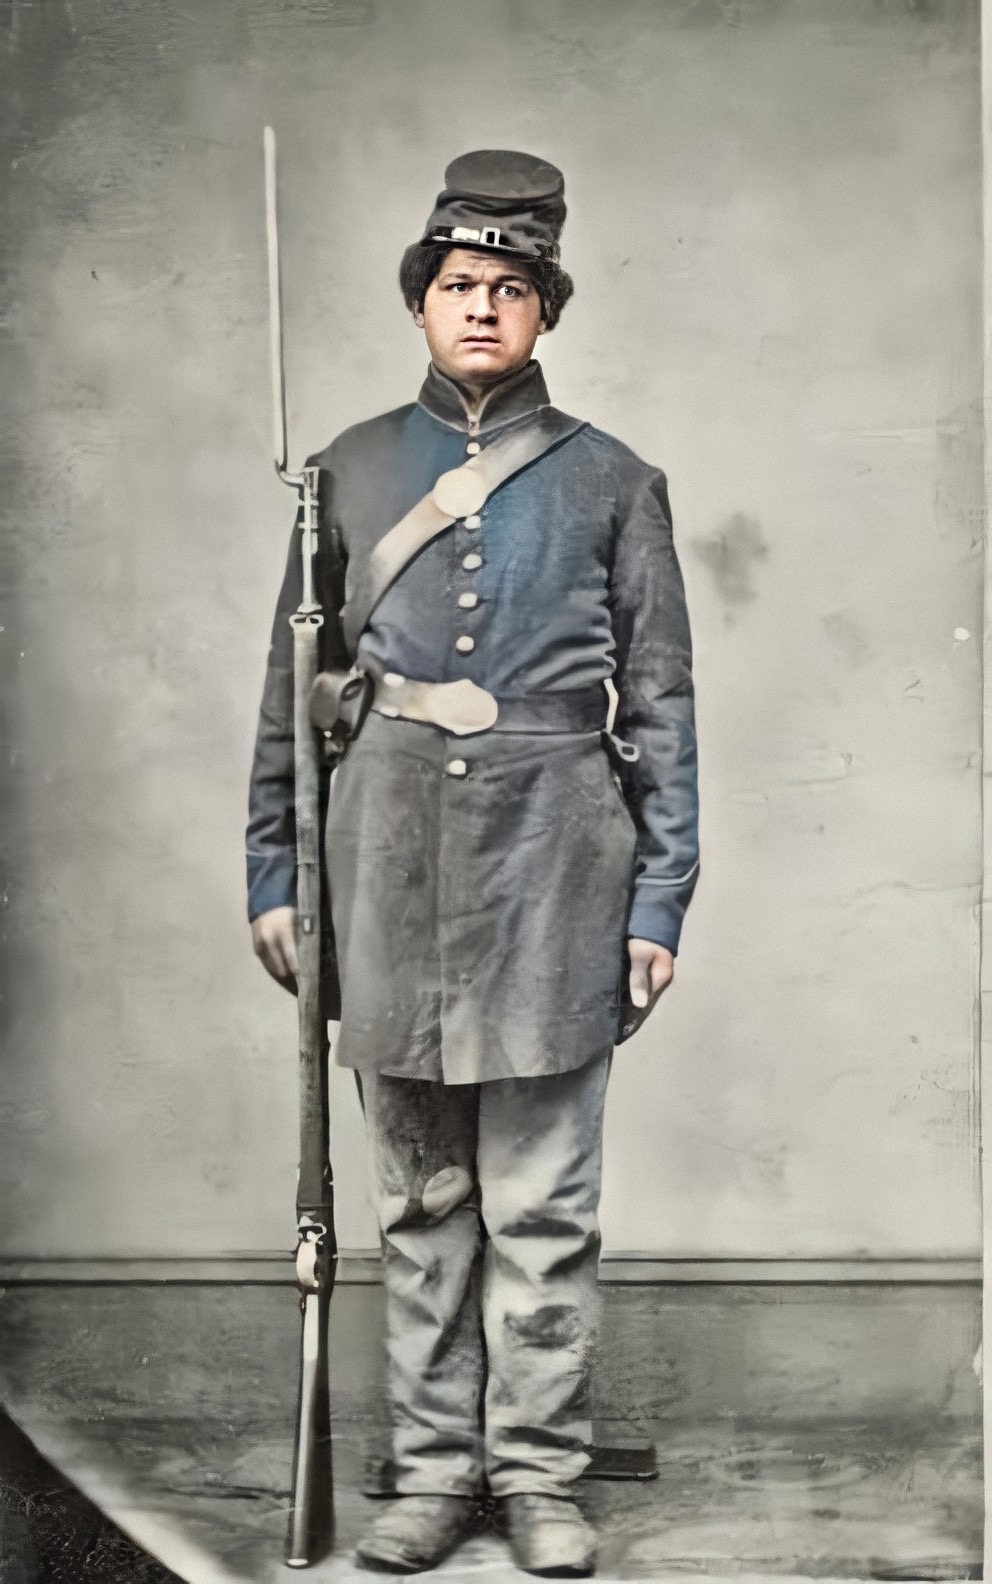 george grigsby usct f company 108th regiment